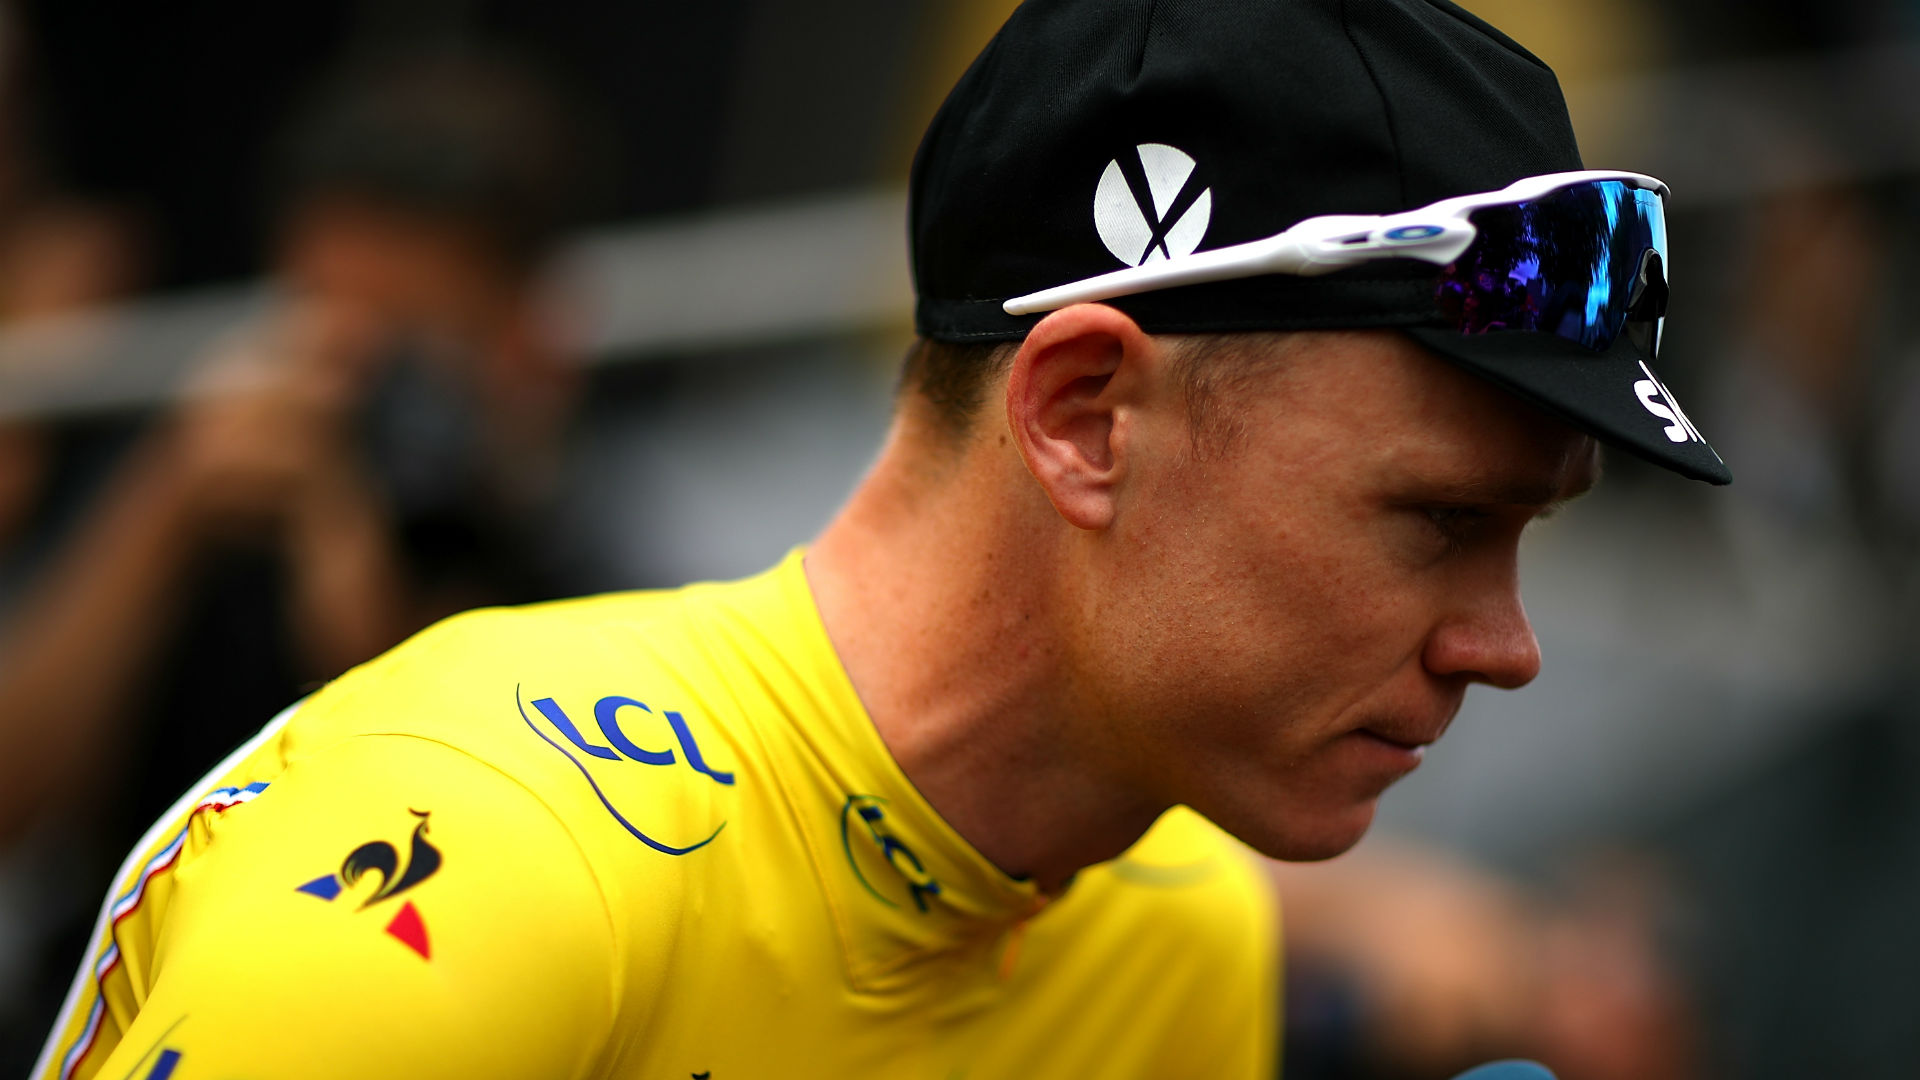 """UCI president David Lappartient said it would be a """"disaster"""" if Chris Froome took part in the Tour de France, irritating the champion."""